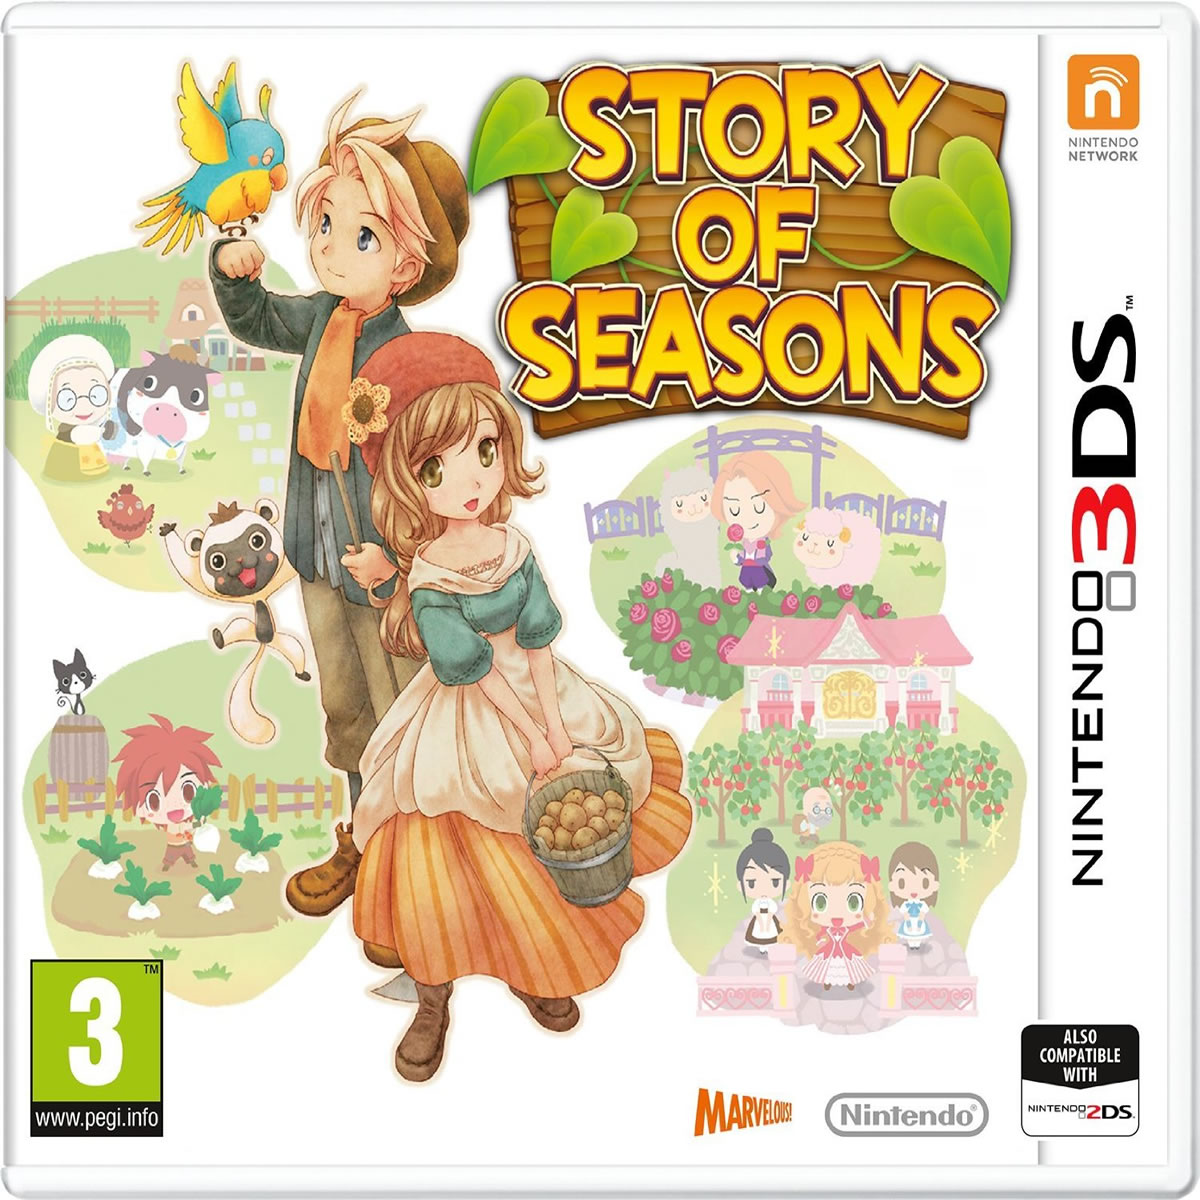 STORY OF SEASONS (3DS, 2DS)